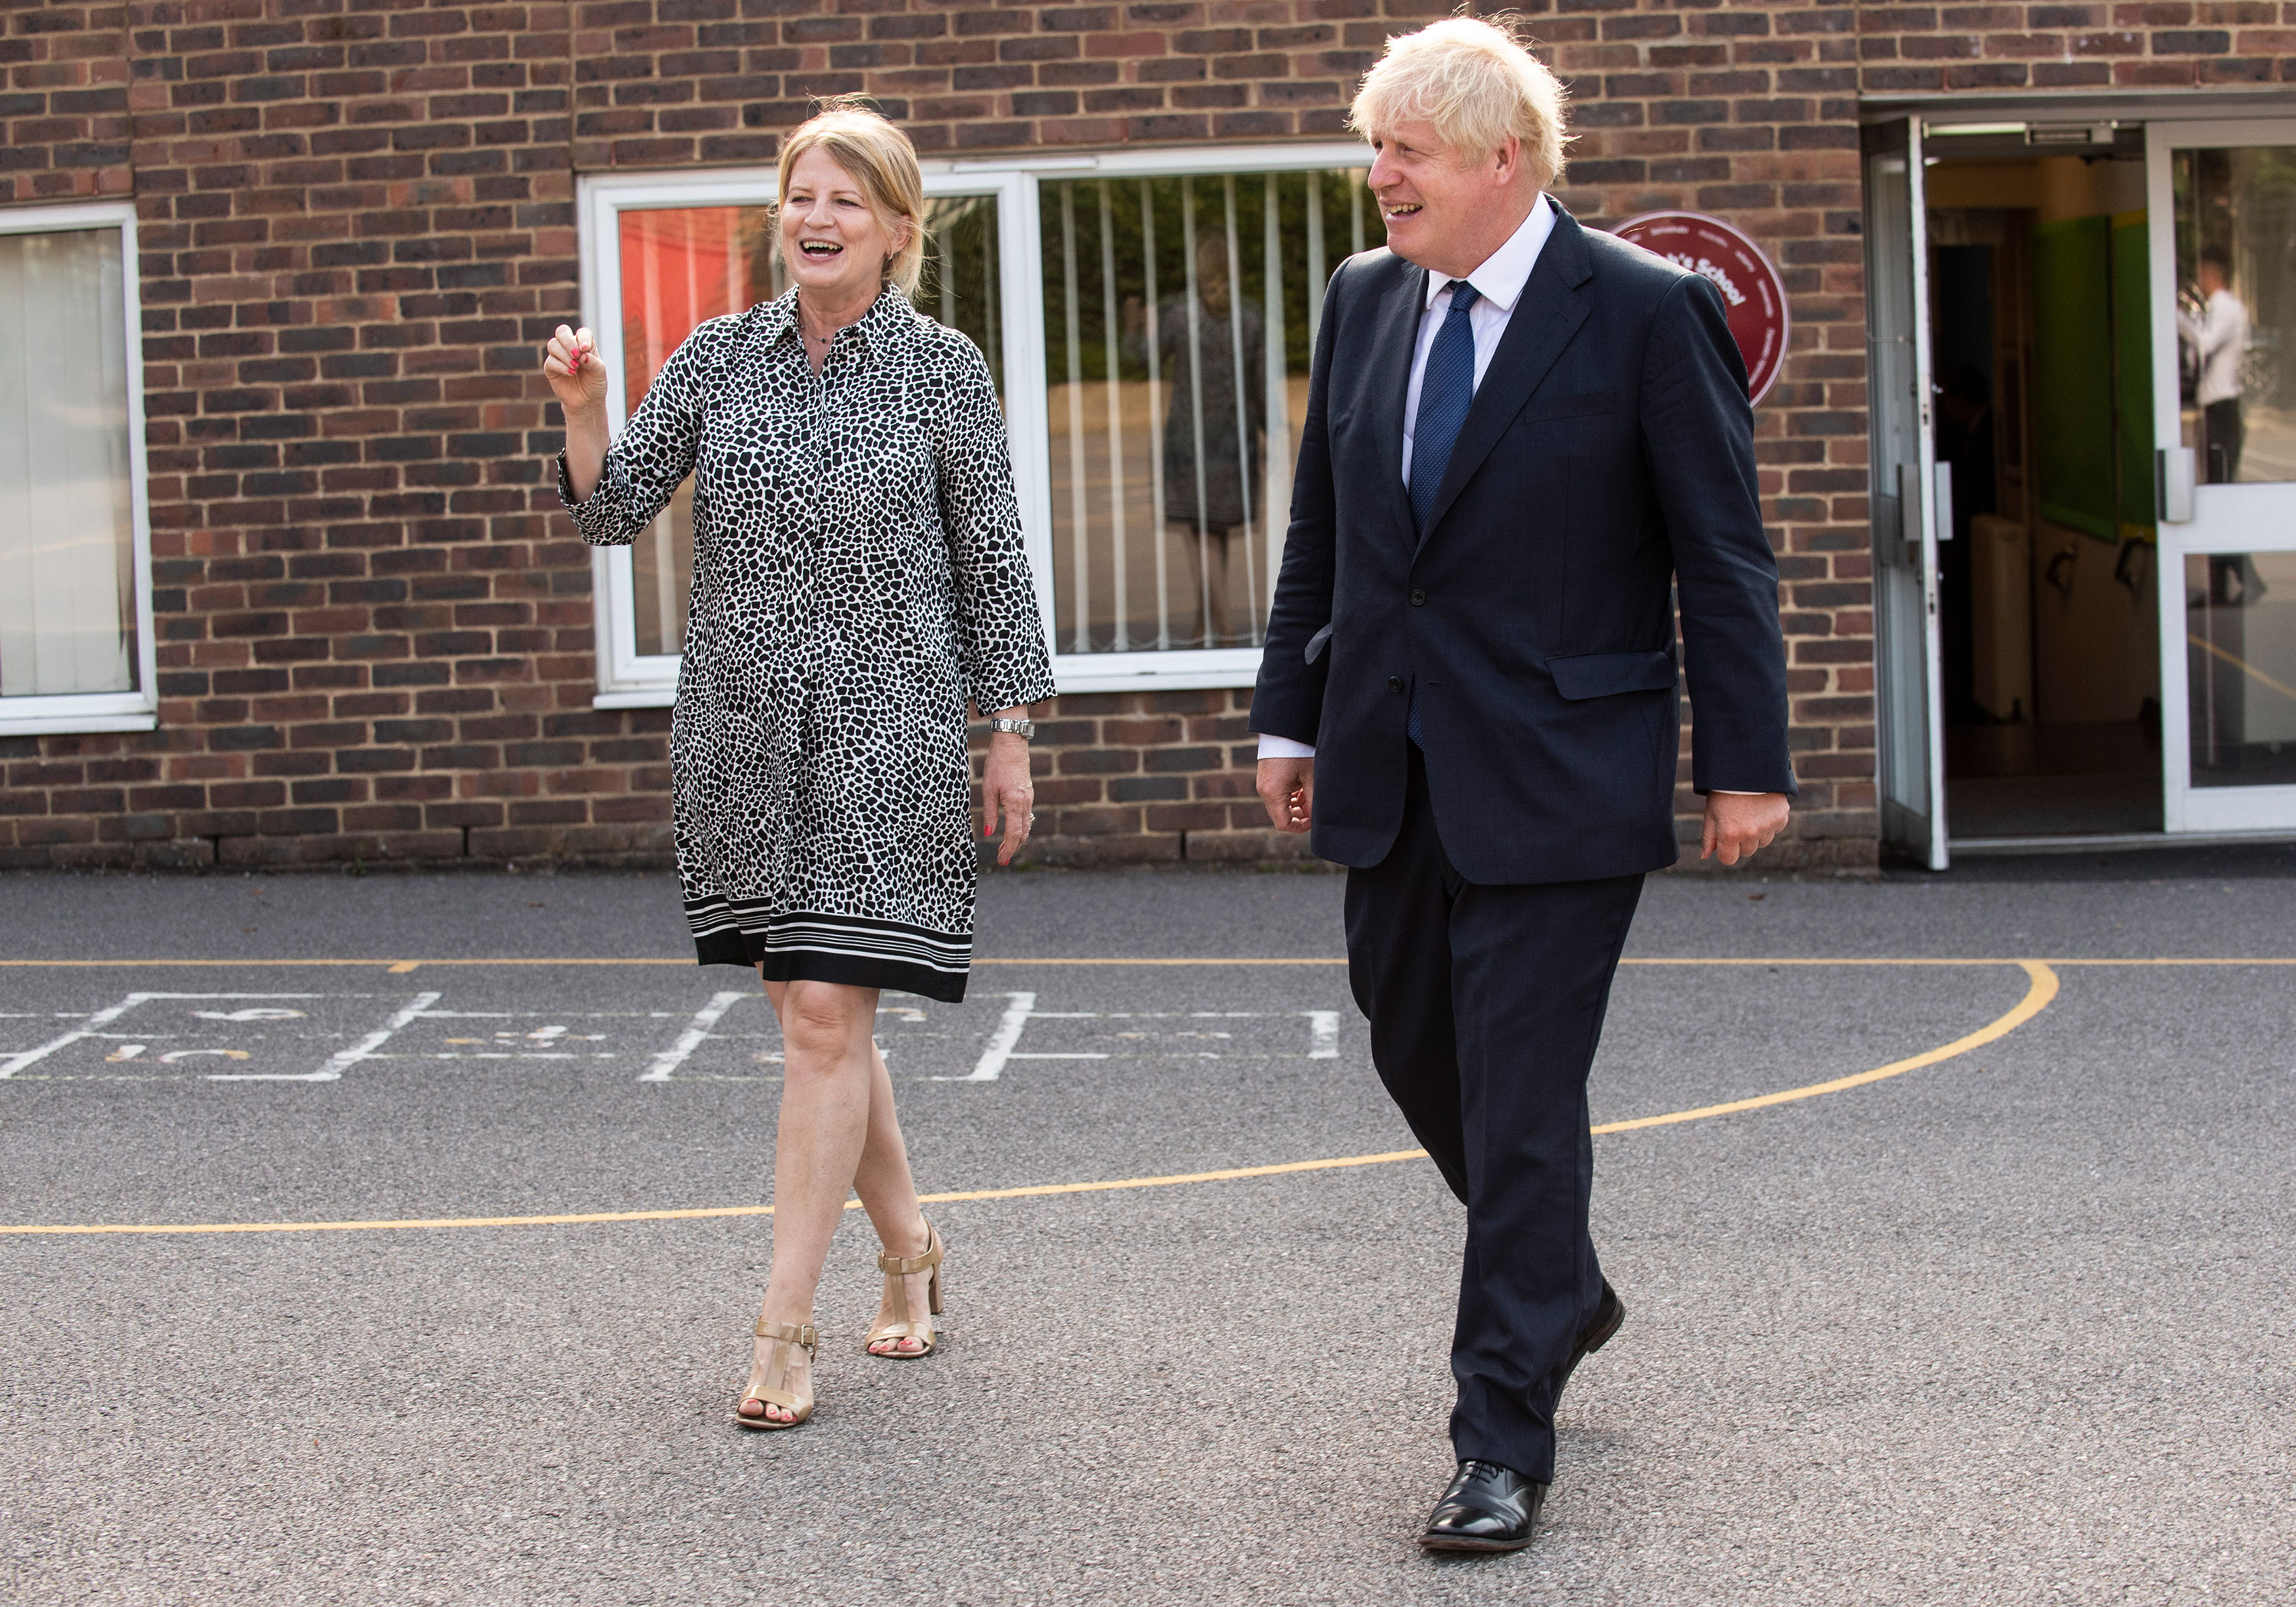 UK Prime Minister Boris Johnson speaks with head teacher, Bernadette Matthews during a visit to St Joseph's Catholic School in Upminster, London, on August 10, to see its new Covid-19 preparedness plans.